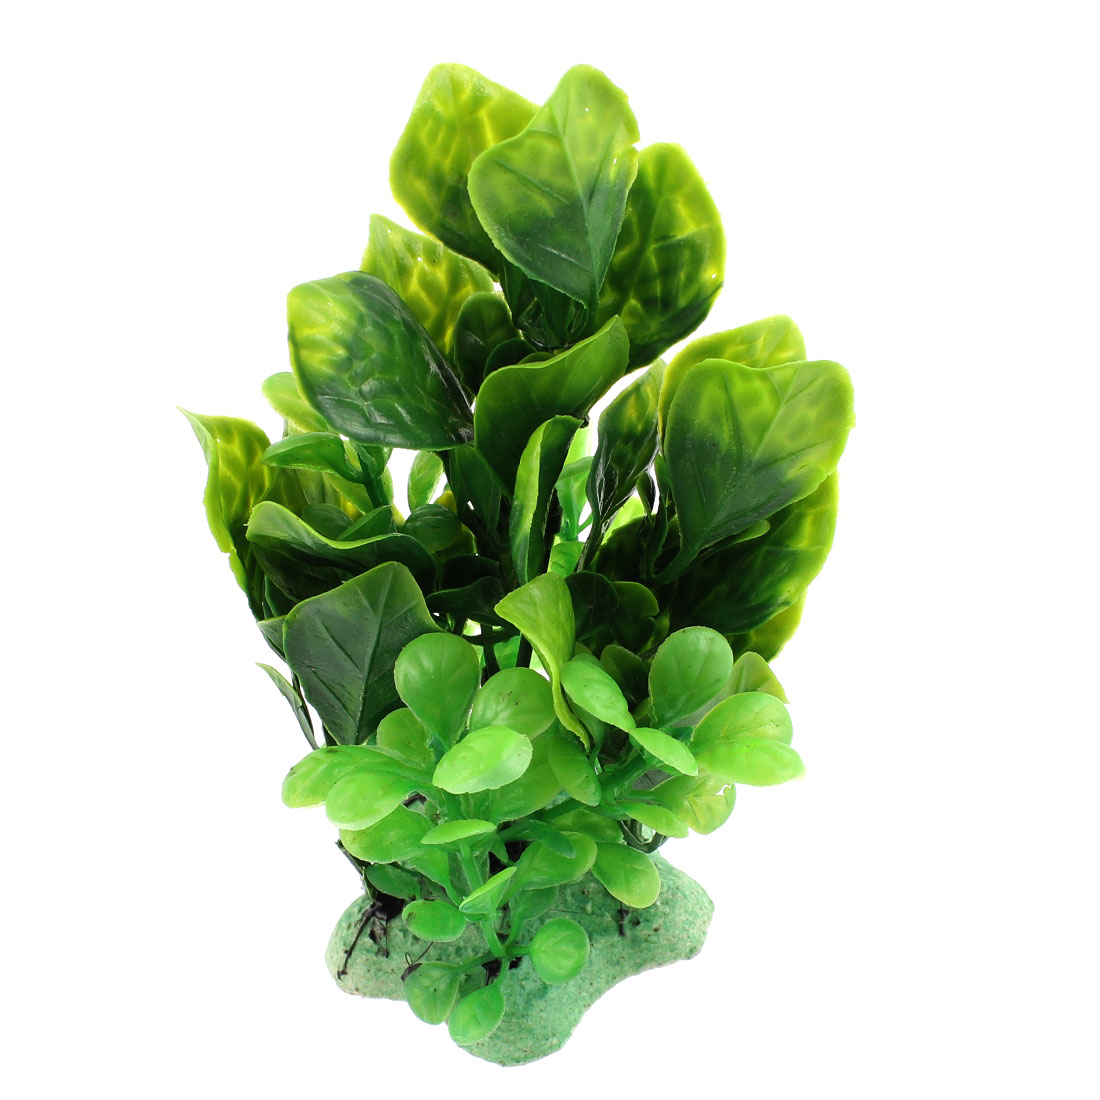 Aquarium Plastic Artificial Underwater Plant Ornament Decor Green 12cm High